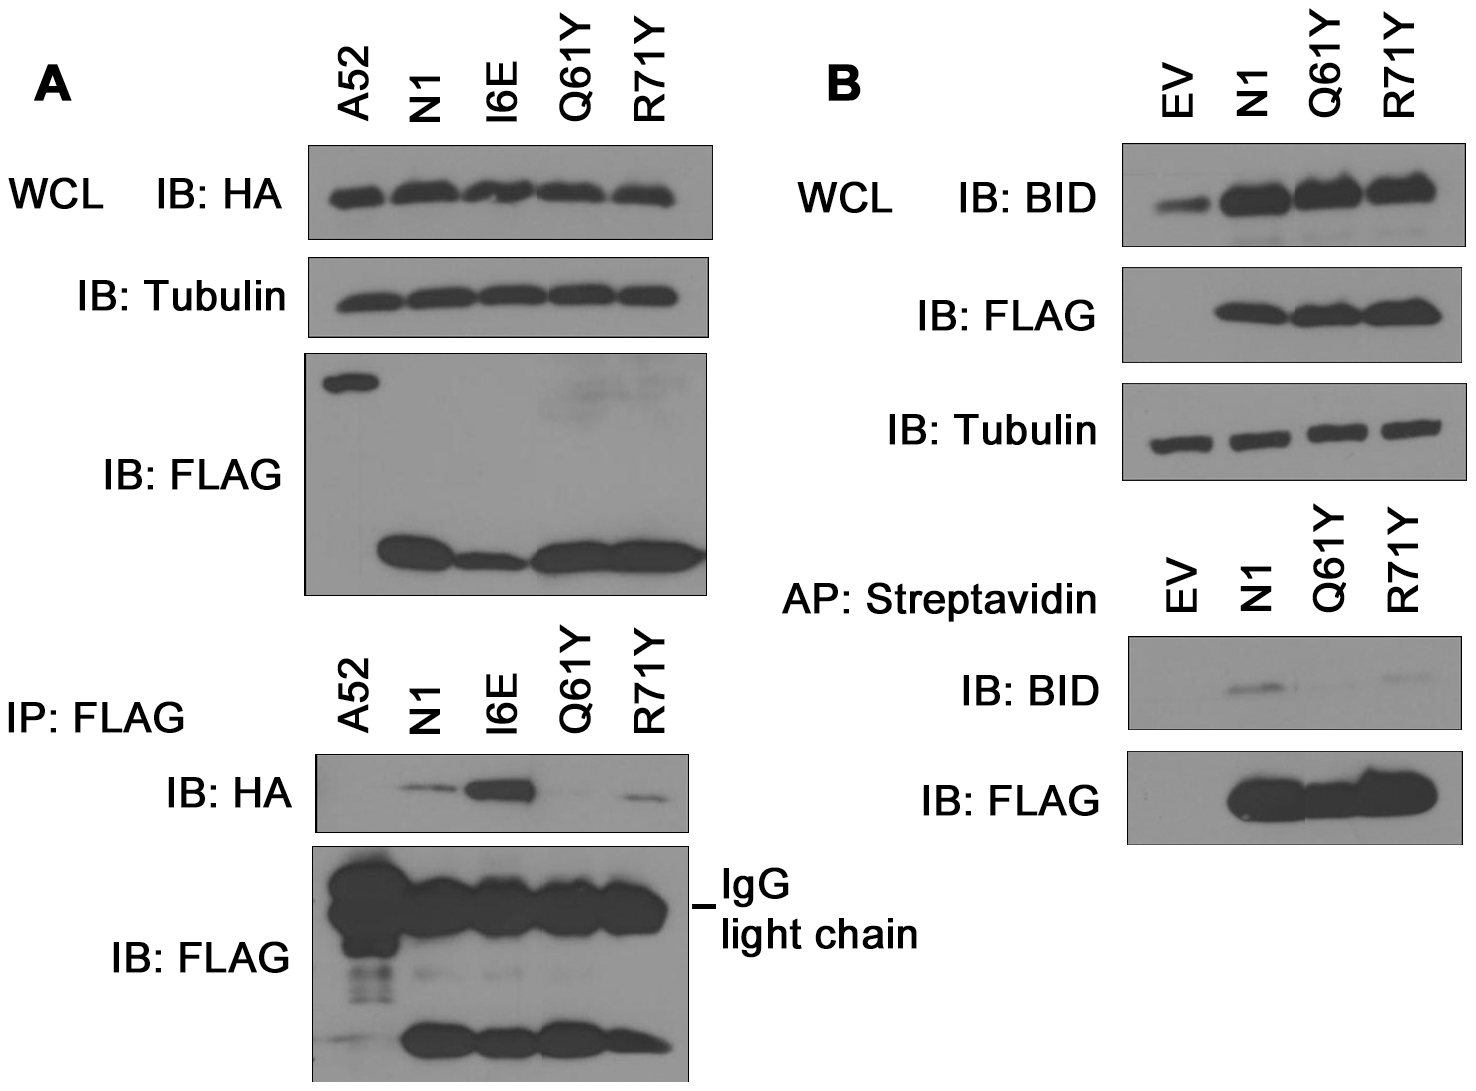 Immunoprecipitation of N1 mutants with cellular pro-apoptotic Bcl-2 proteins.